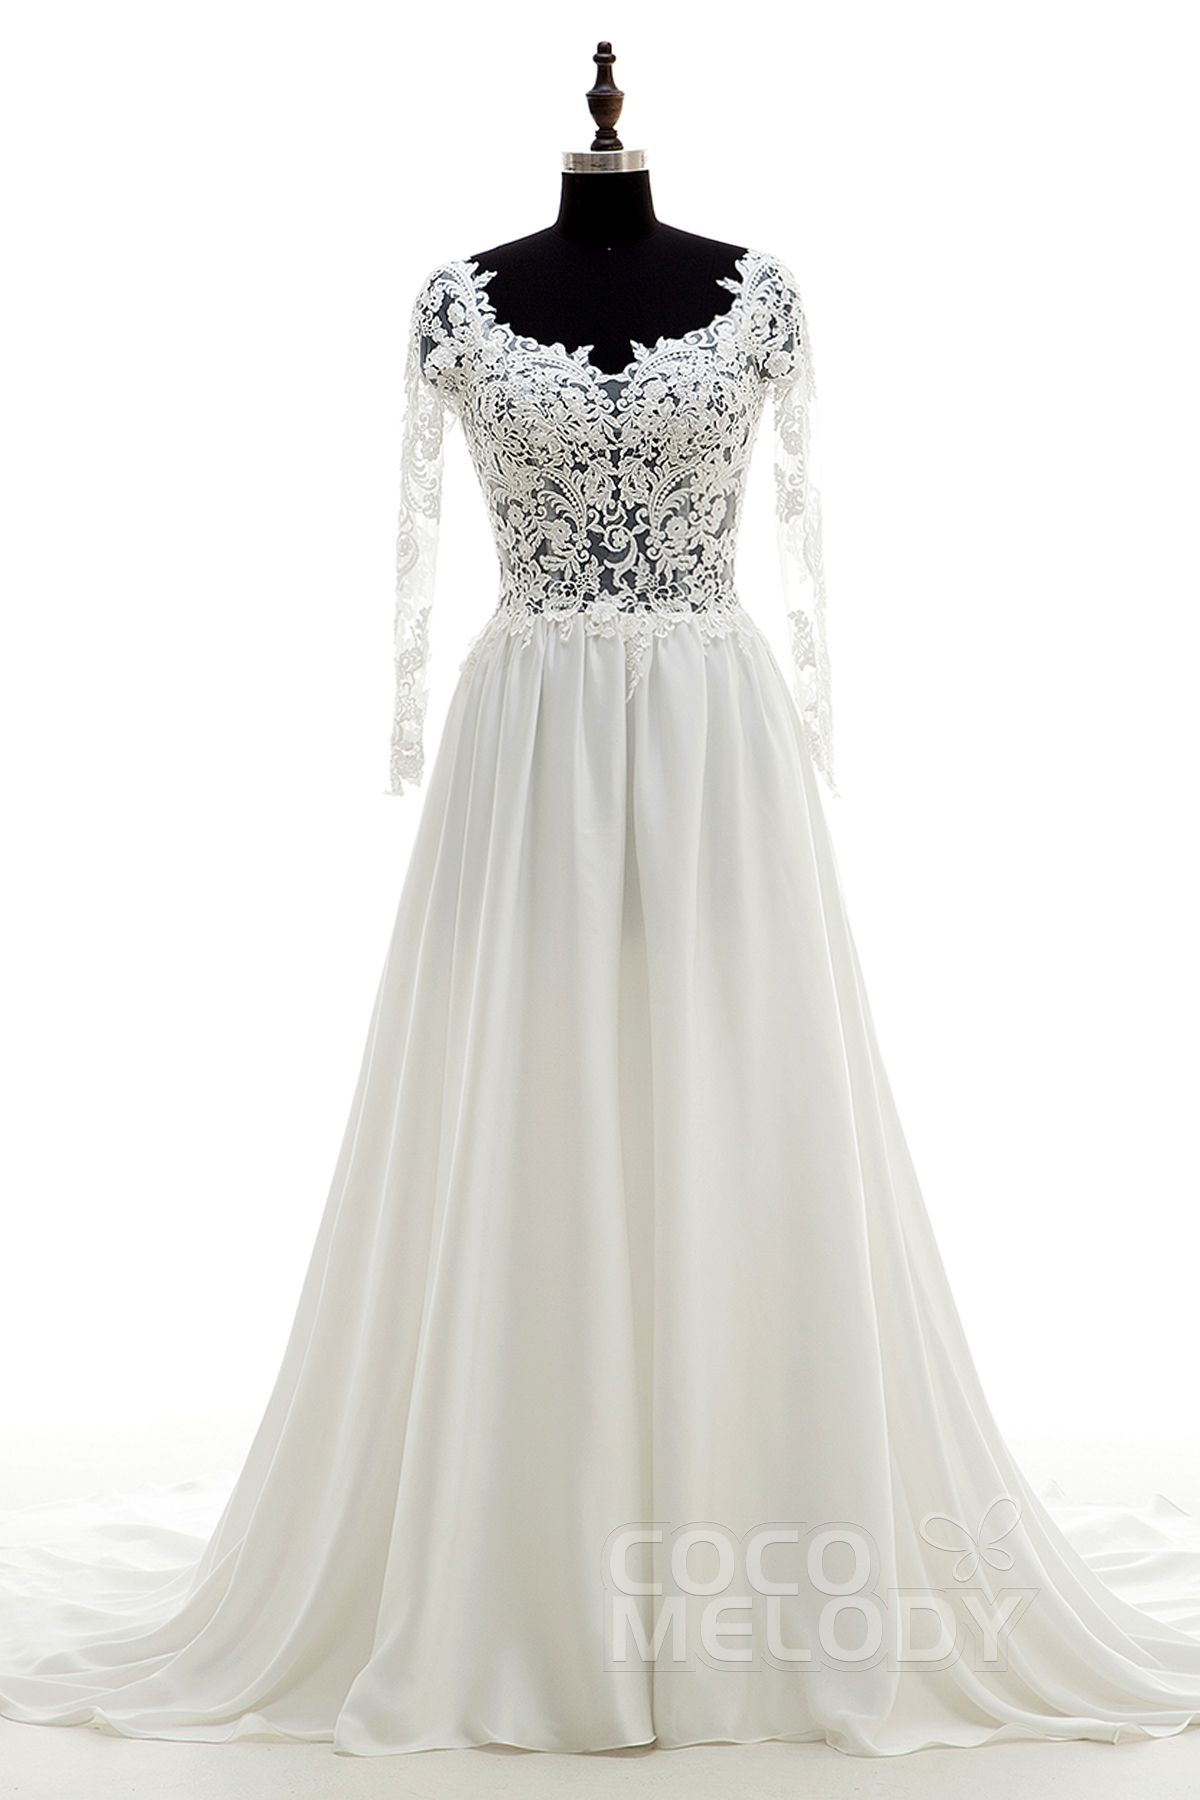 Divine aline scoop natural chapel train chiffon and lace ivory long